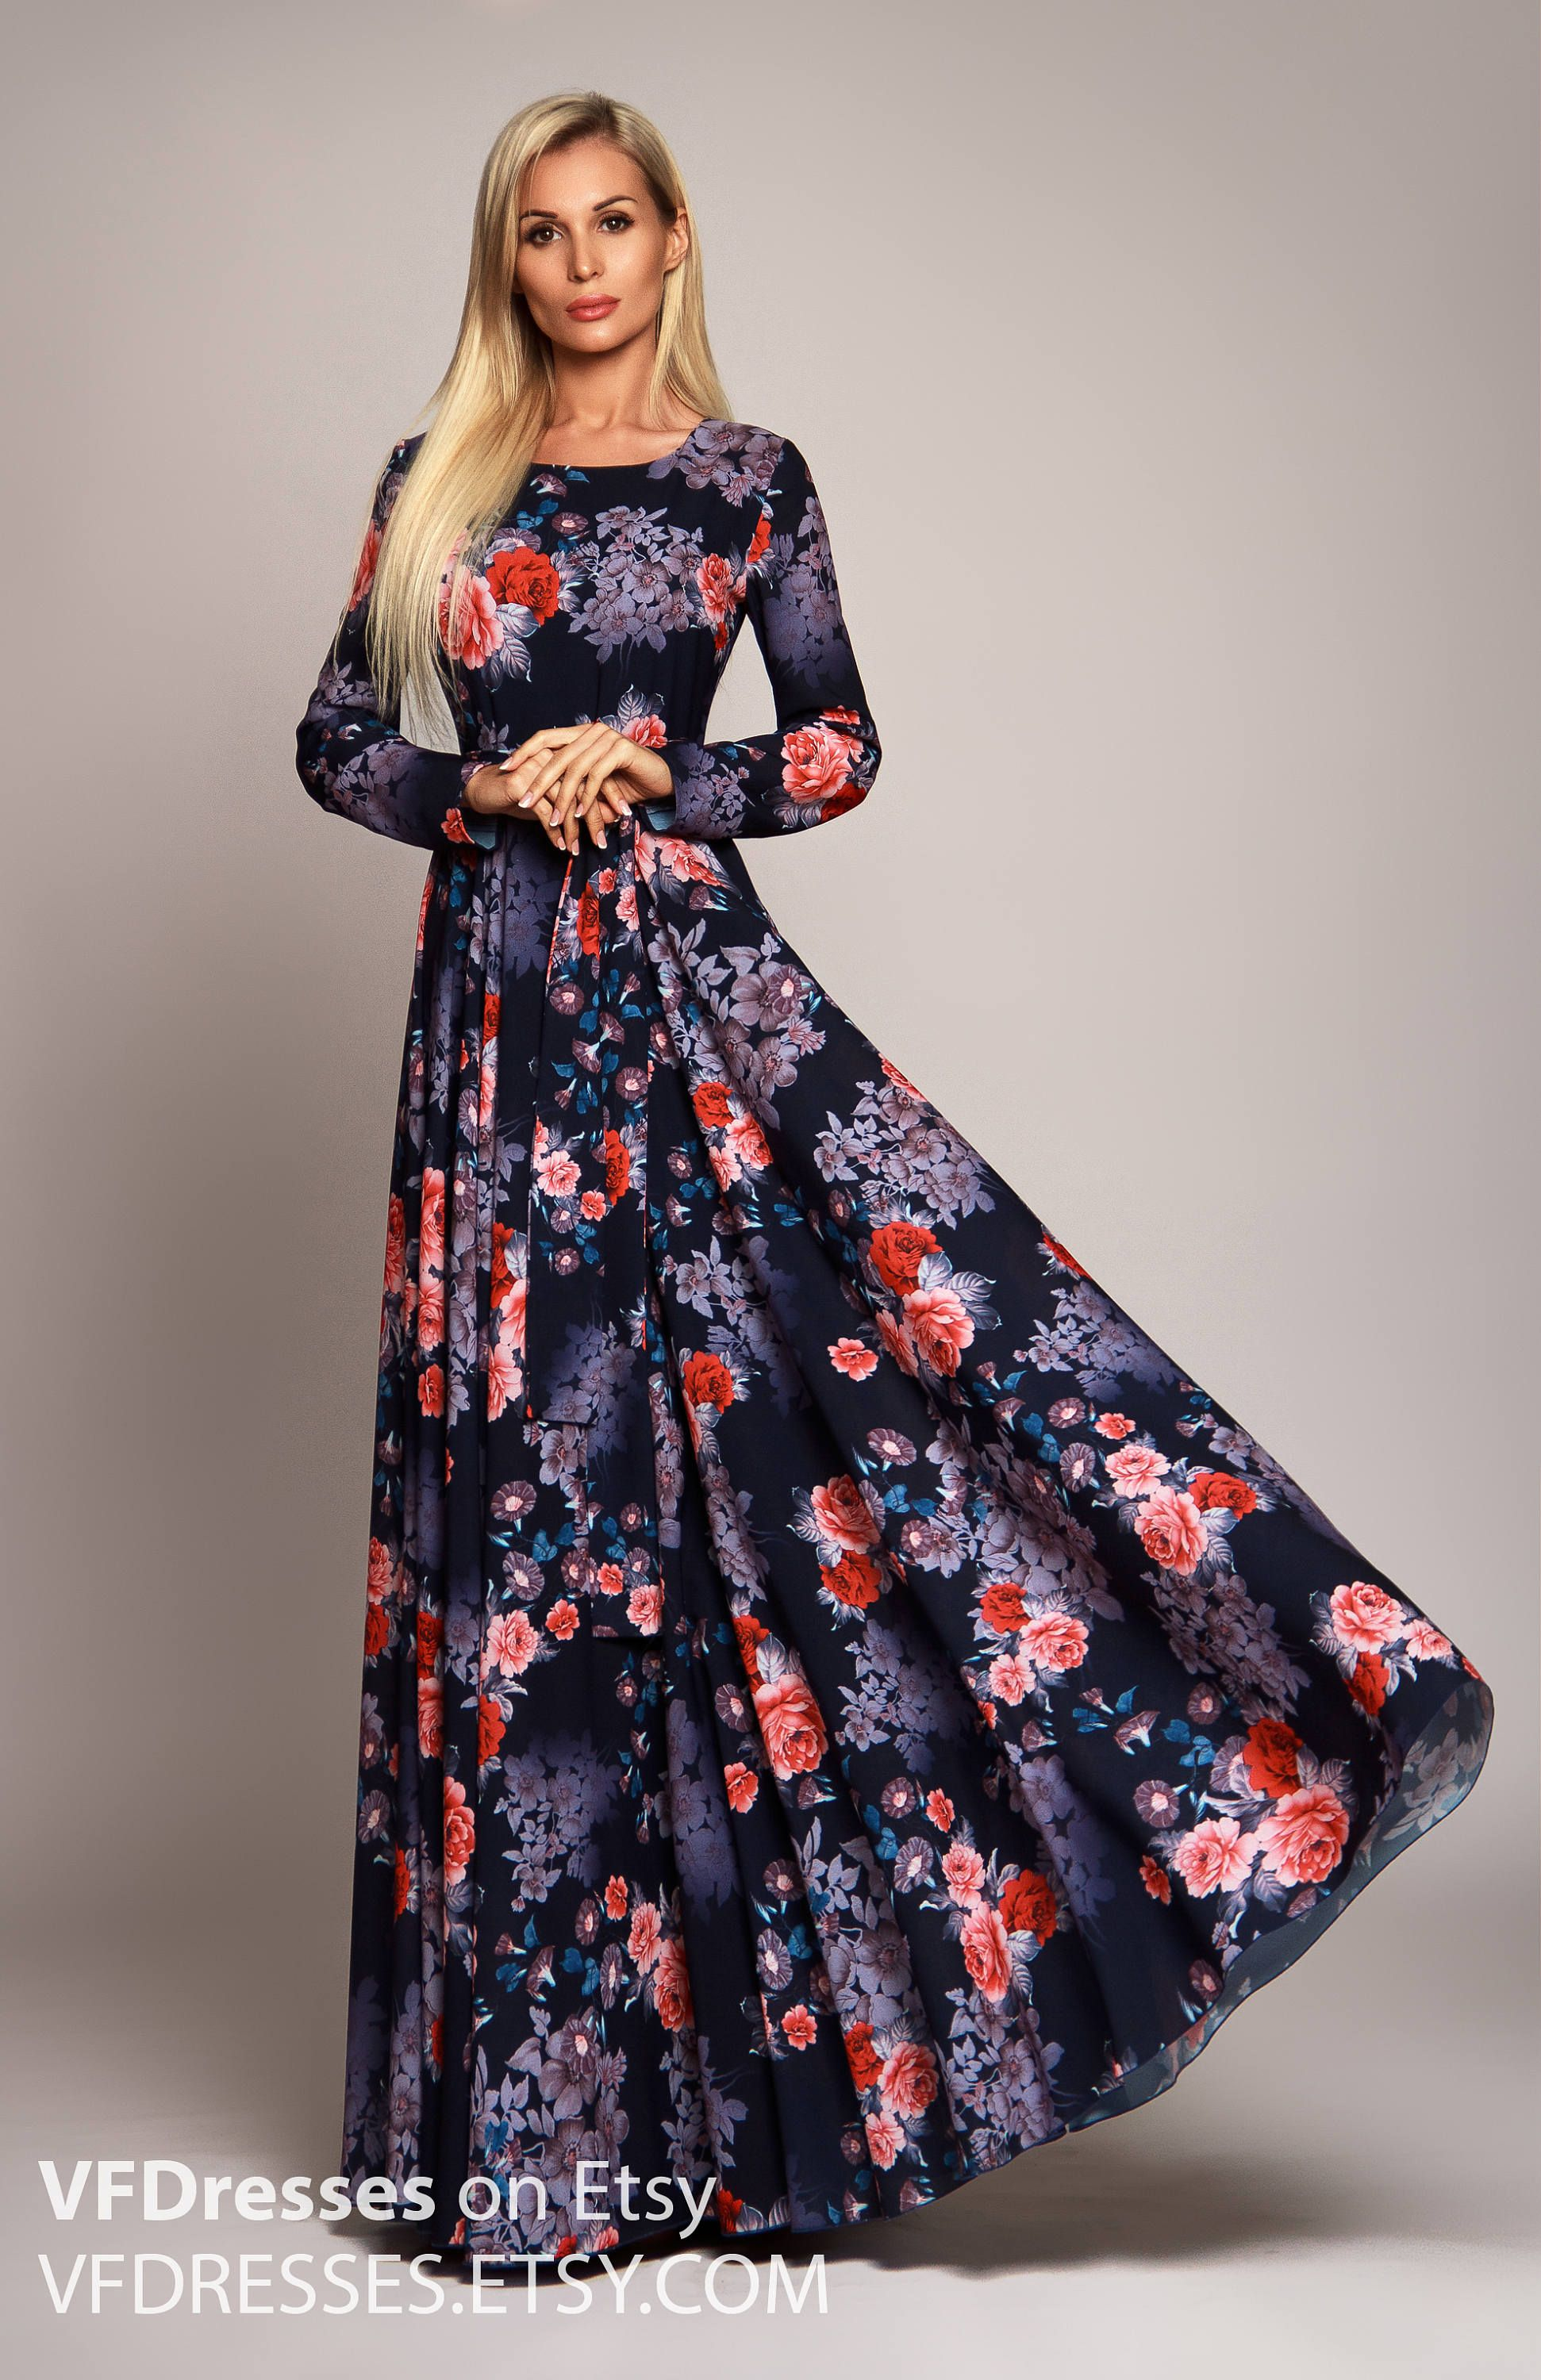 039b8339a098 Dark blue Floral maxi dress long sleeve dress summer dress | Zzzz in ...